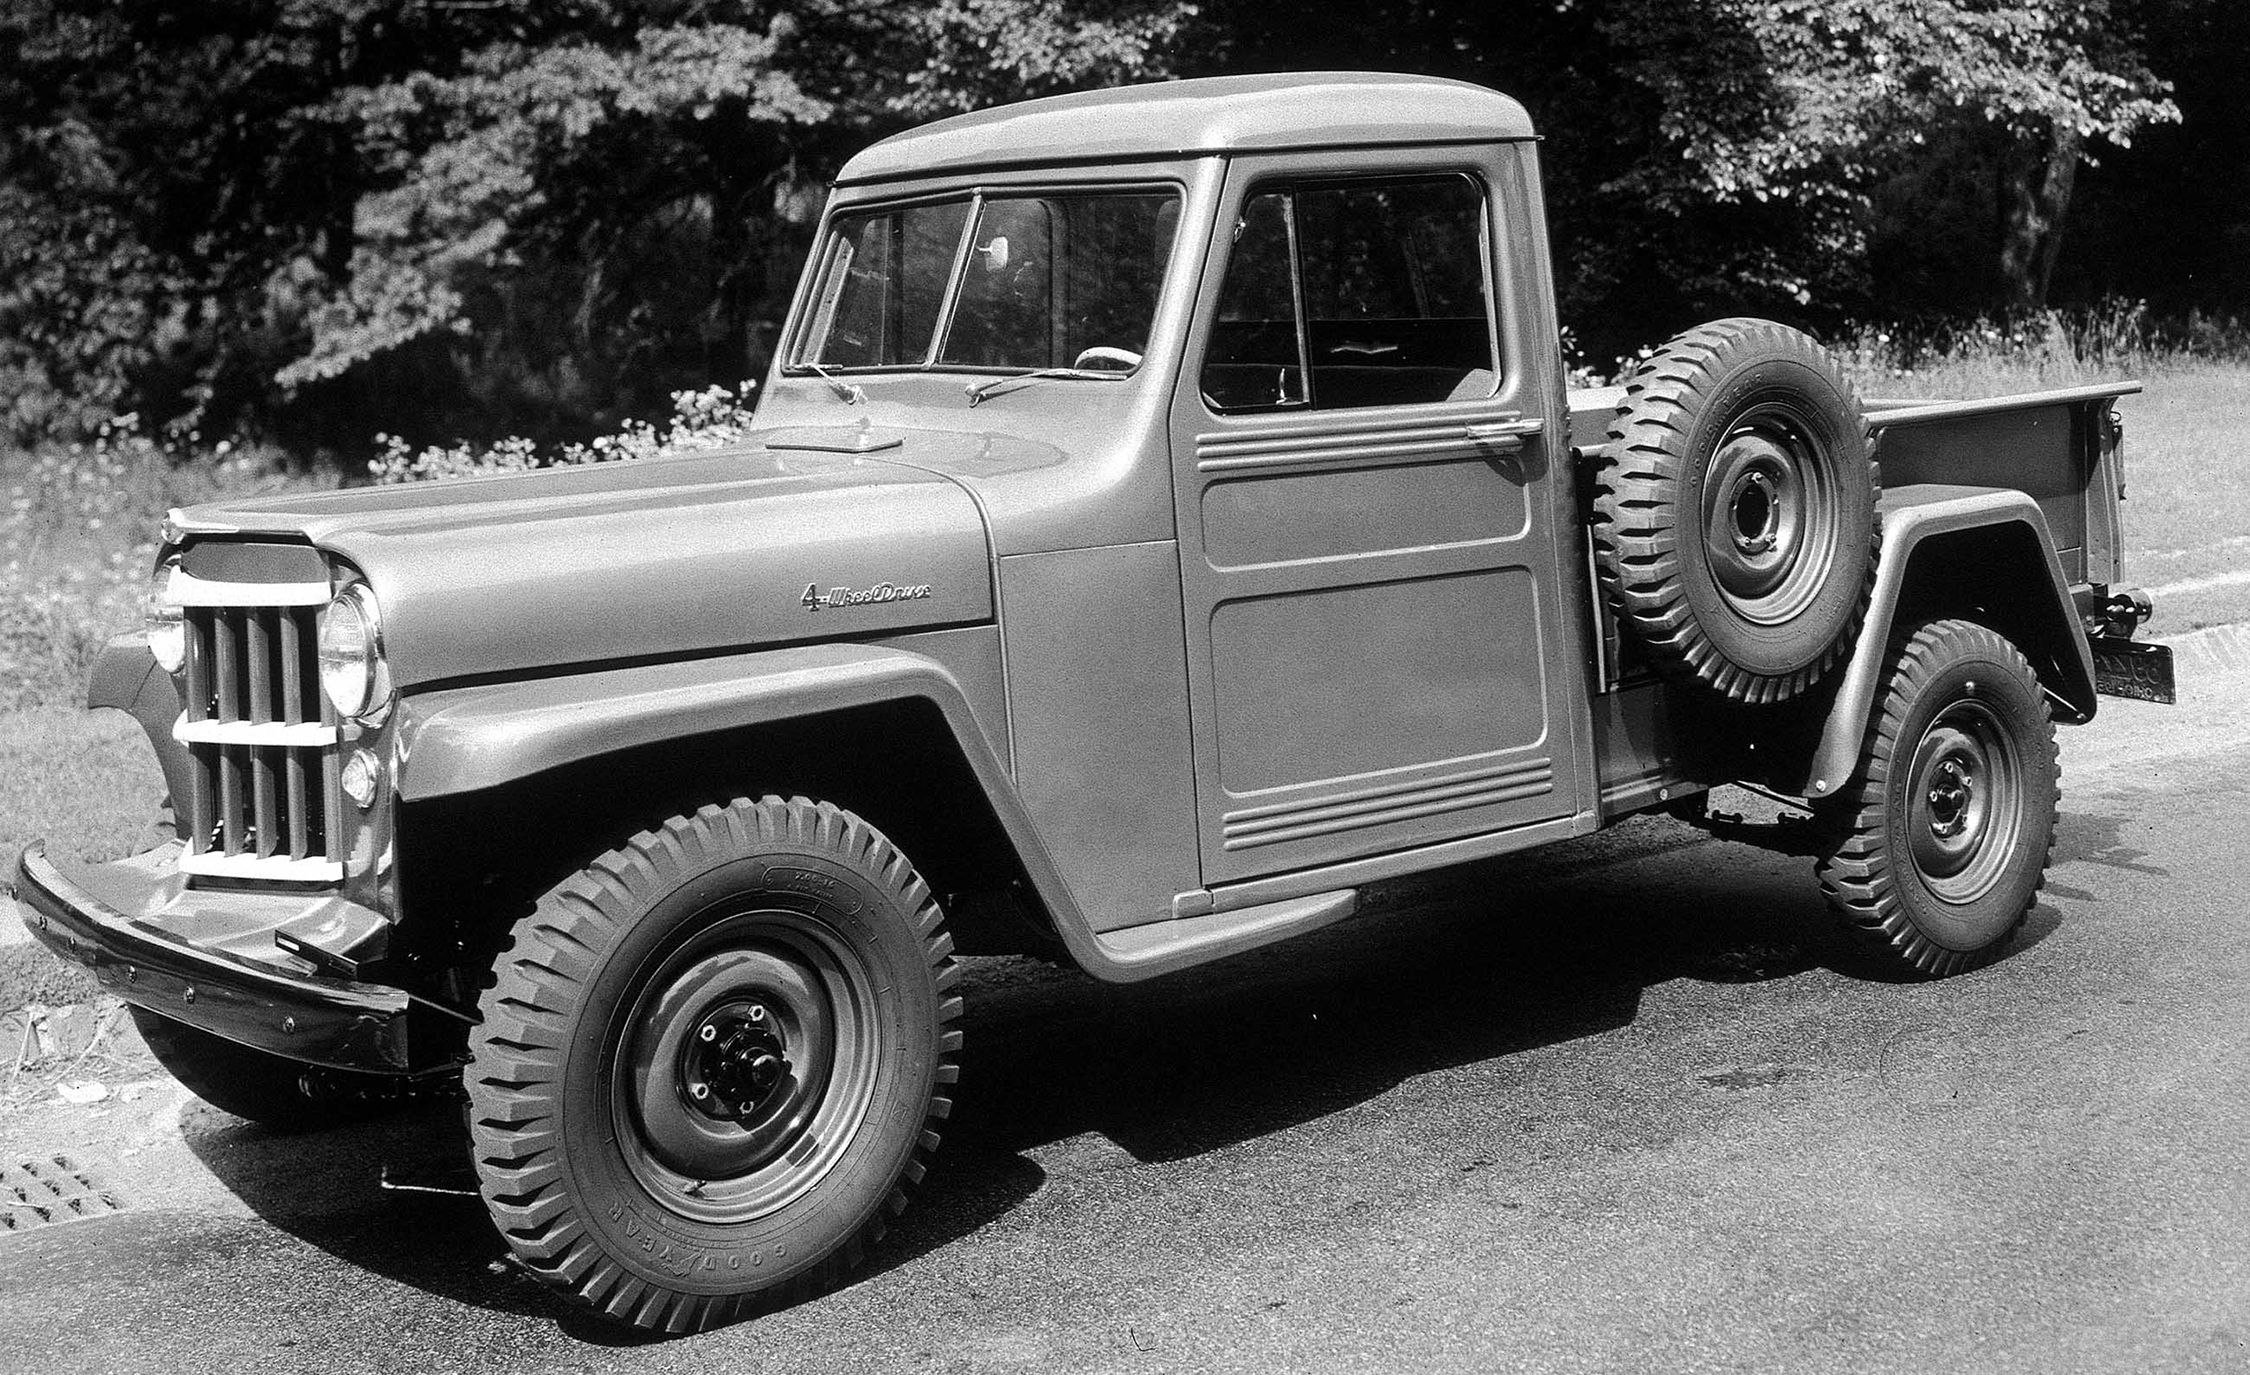 Superb A Visual History Of Jeep Pickup Trucks: The Lineage Is Longer Than You Think